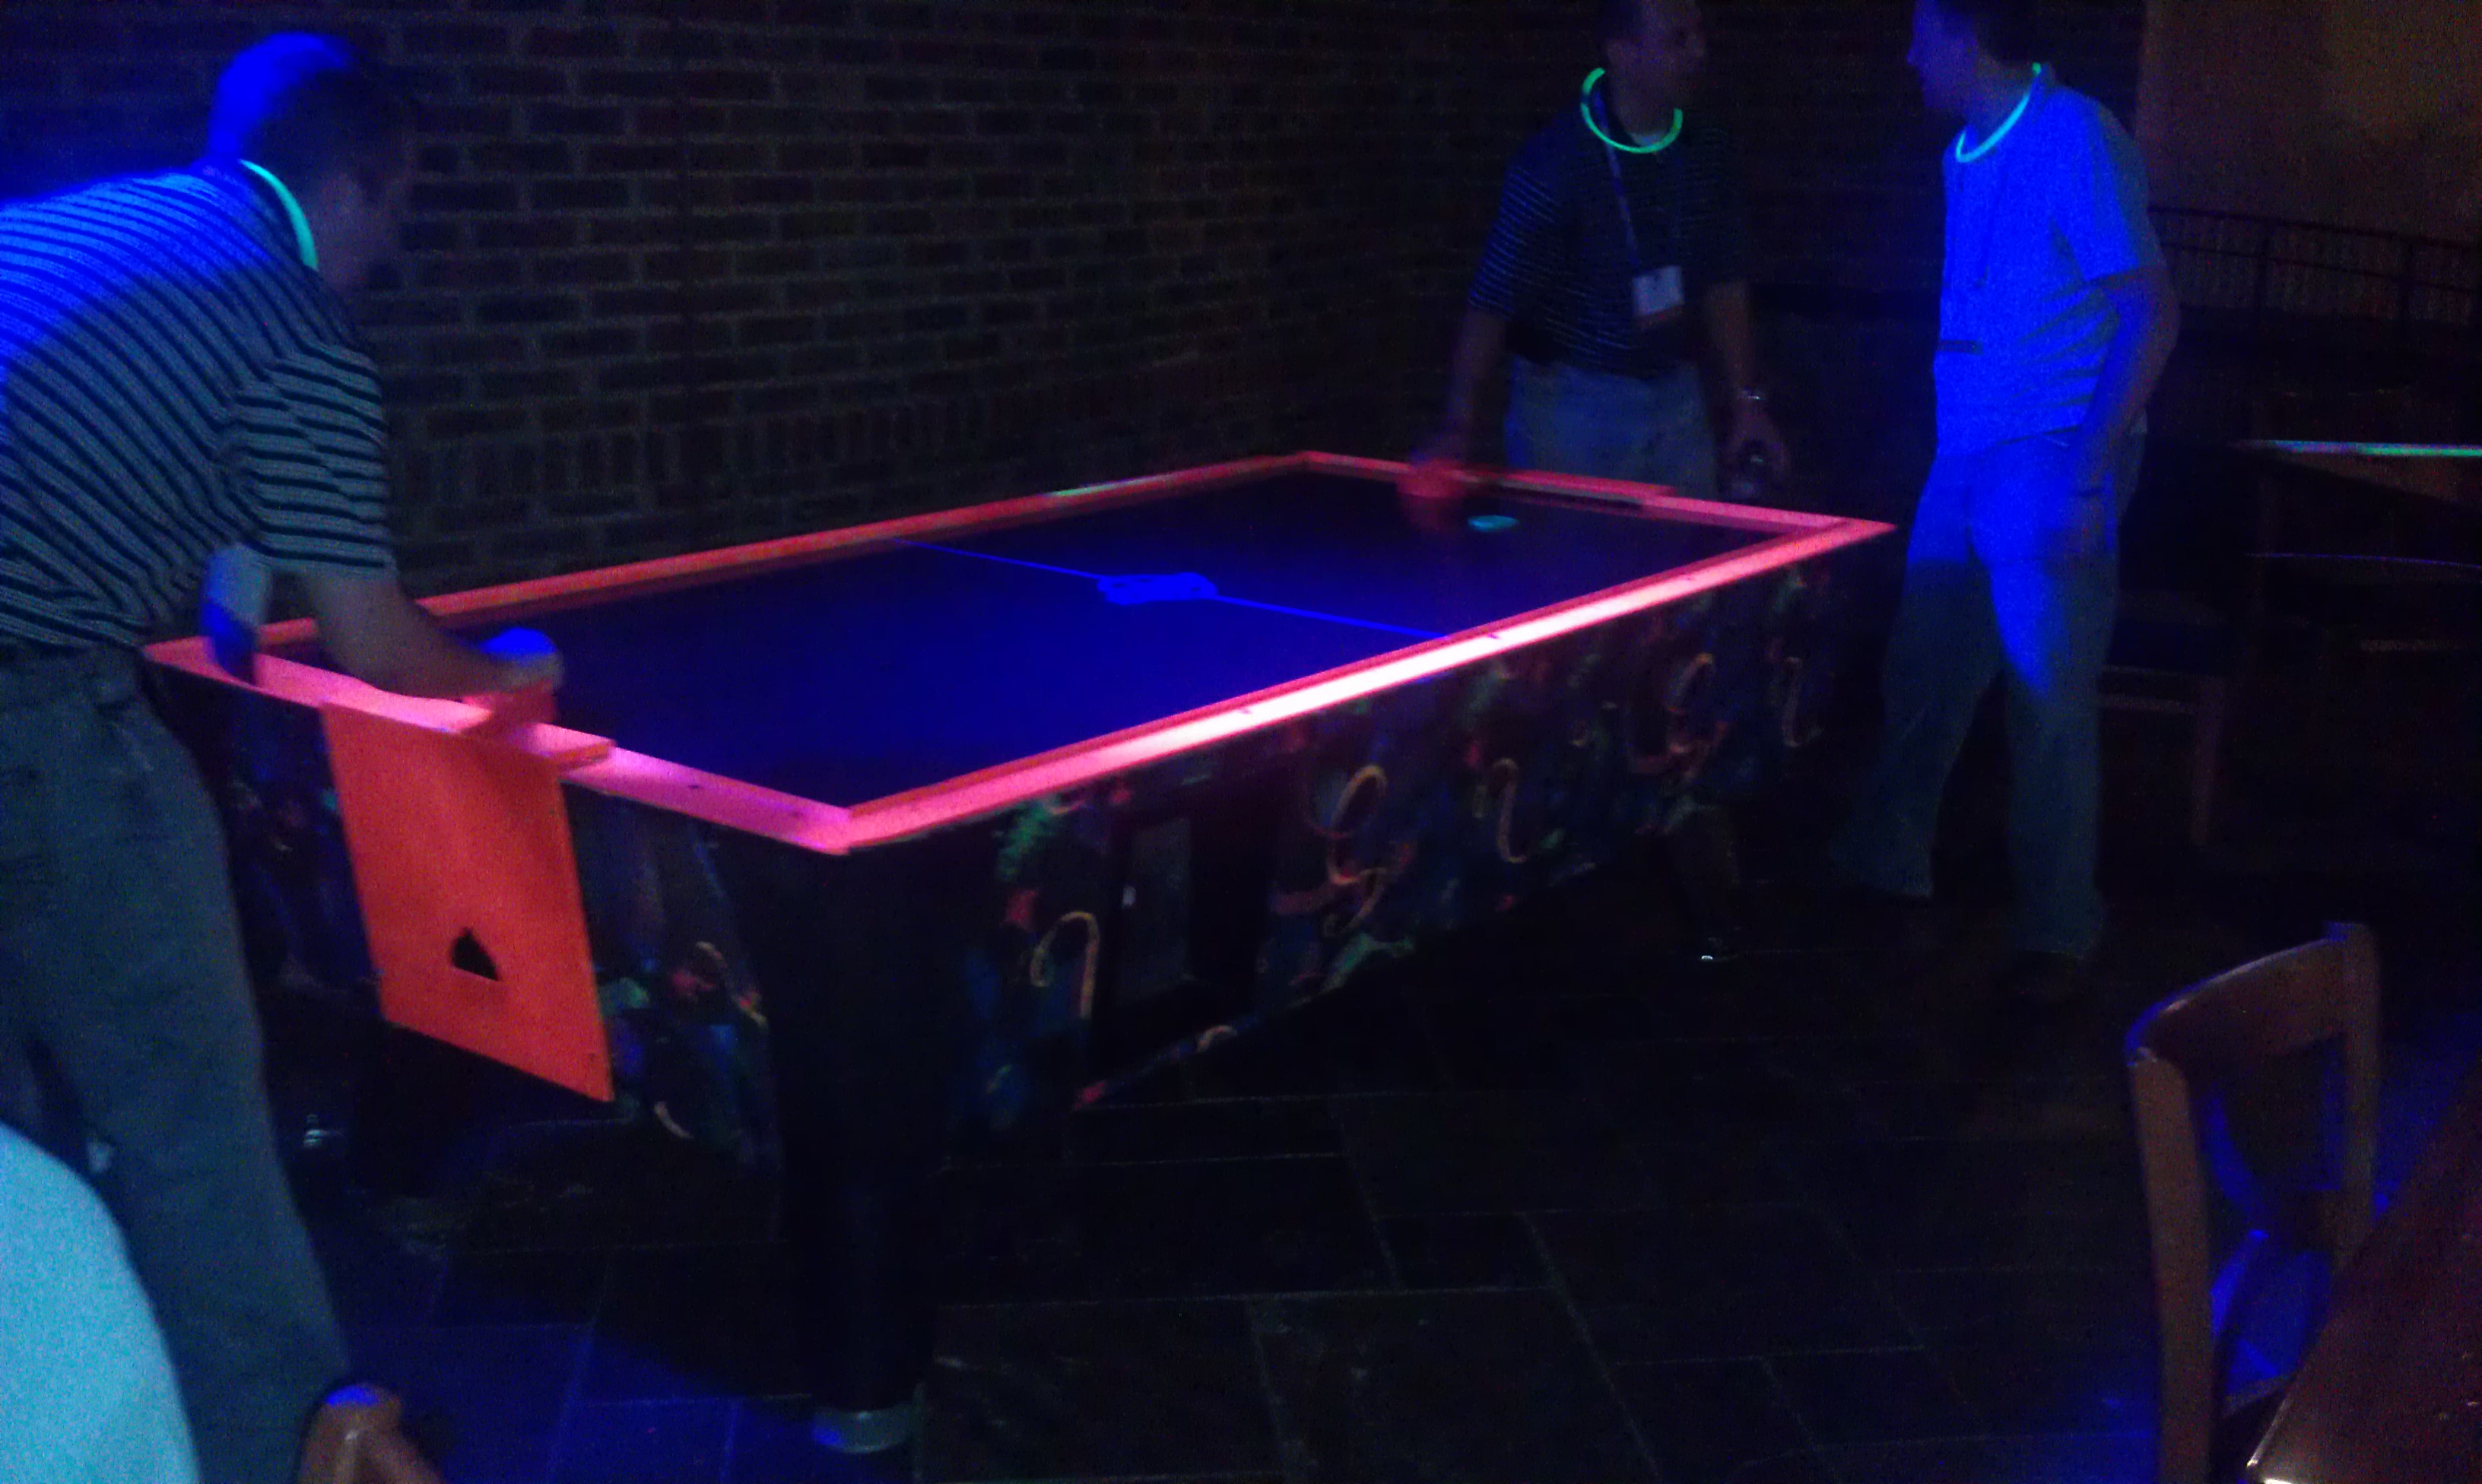 Arcade sports bar types amusement masters blacklight air hockey mozeypictures Image collections